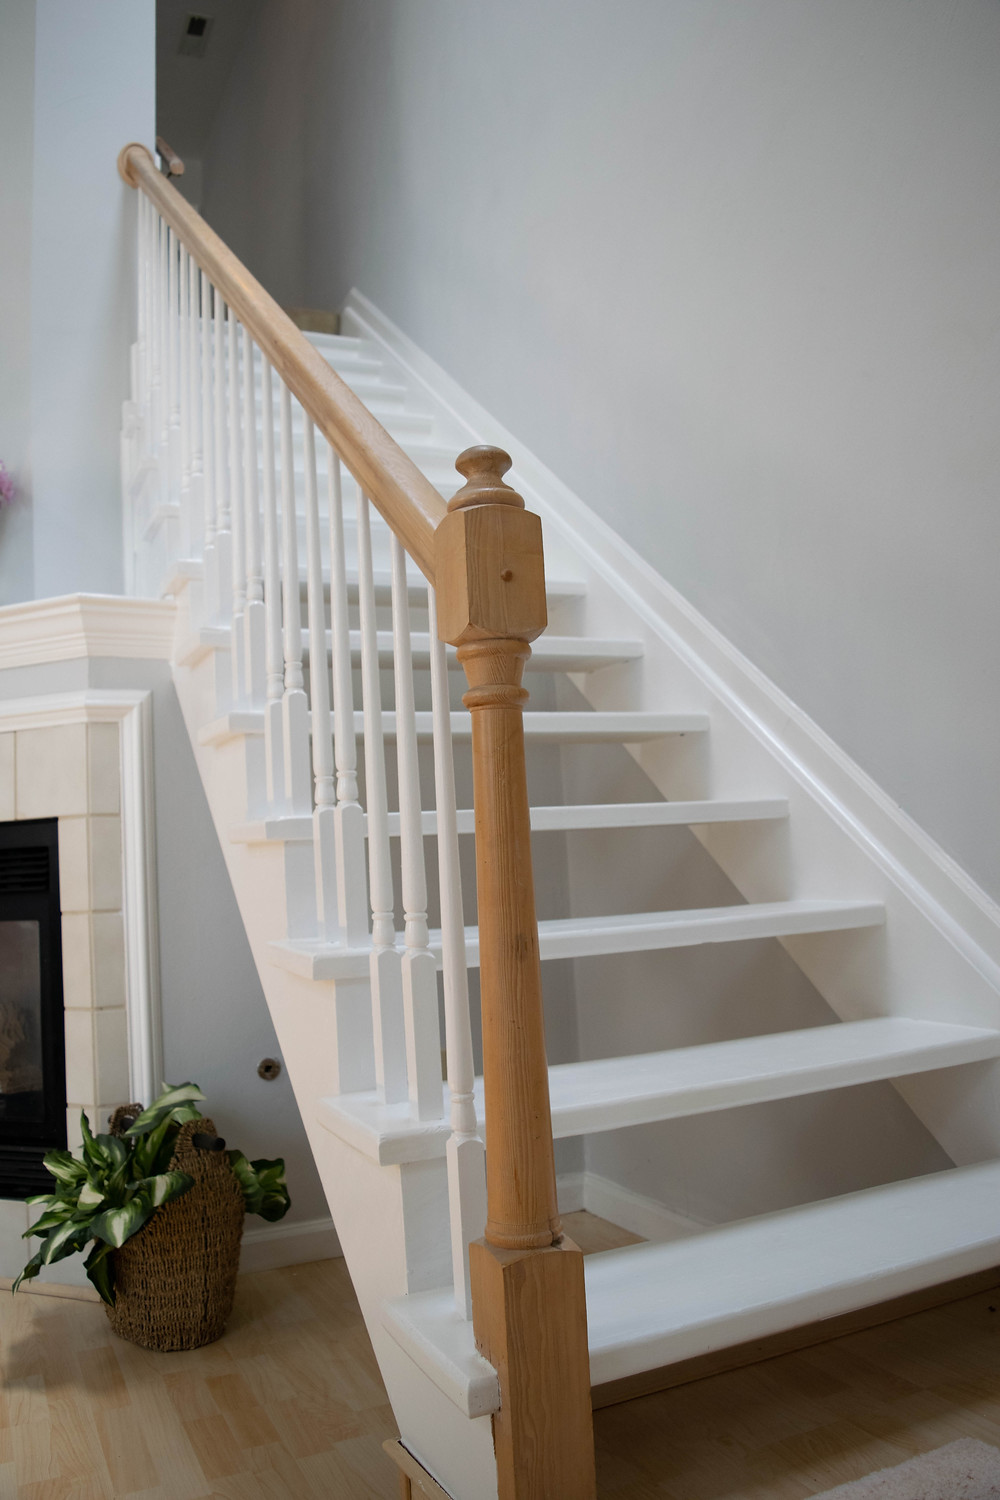 Staircase with banister